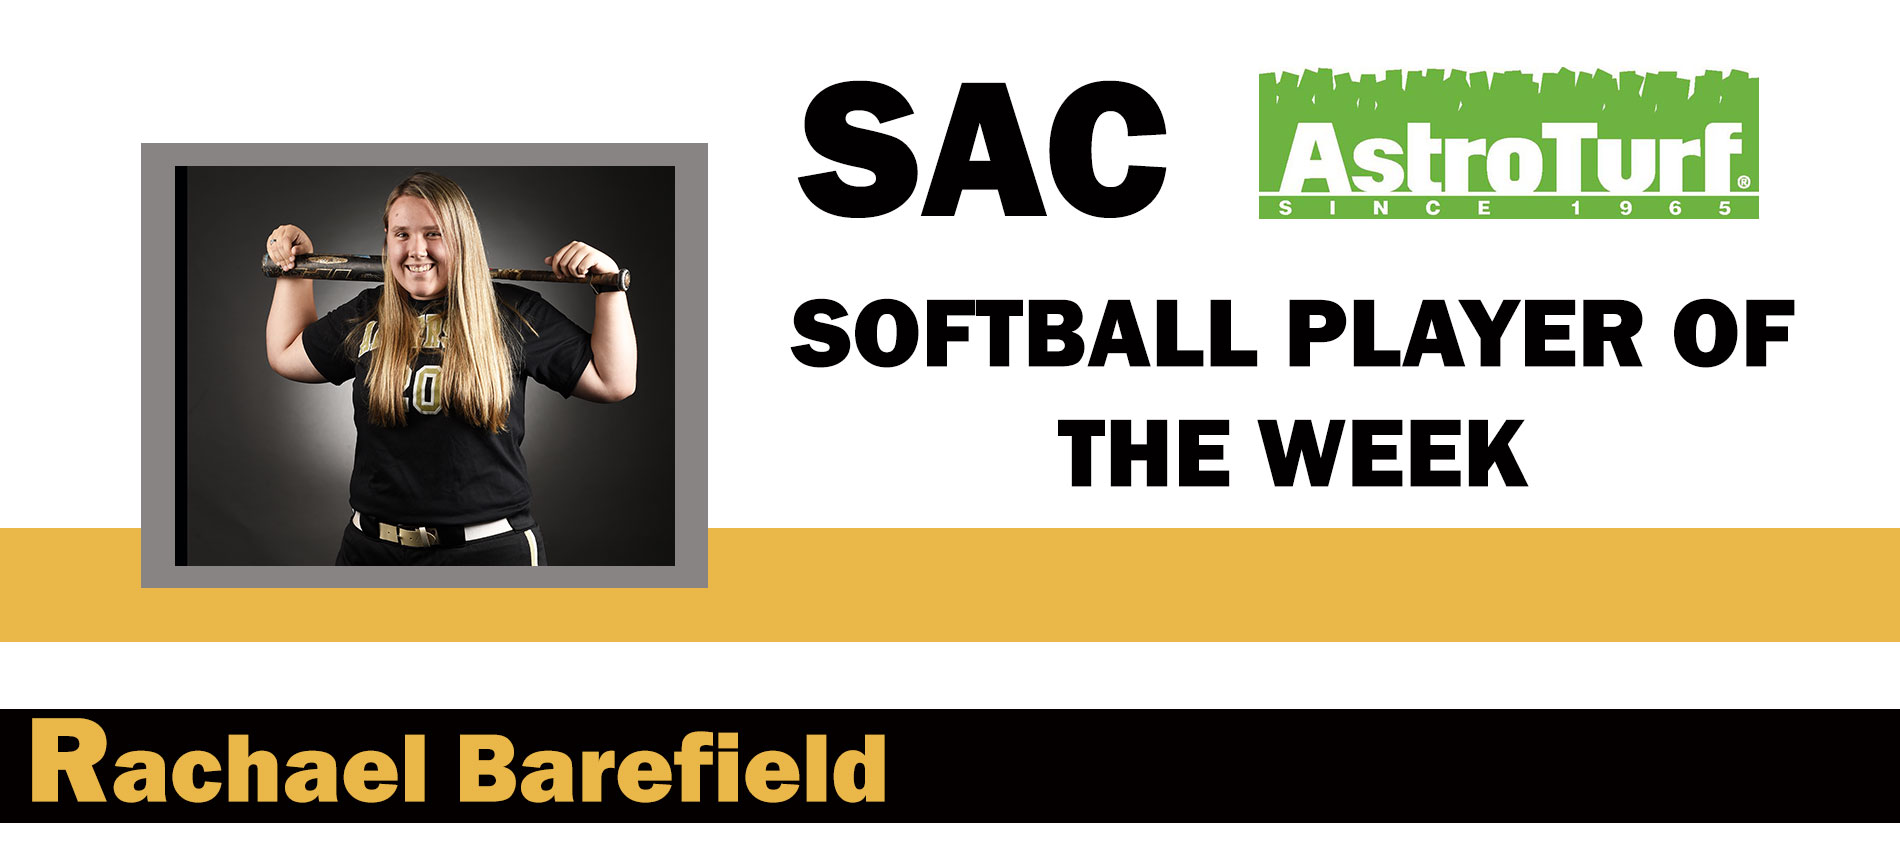 Barefield Named AstroTurf SAC Softball Player of the Week